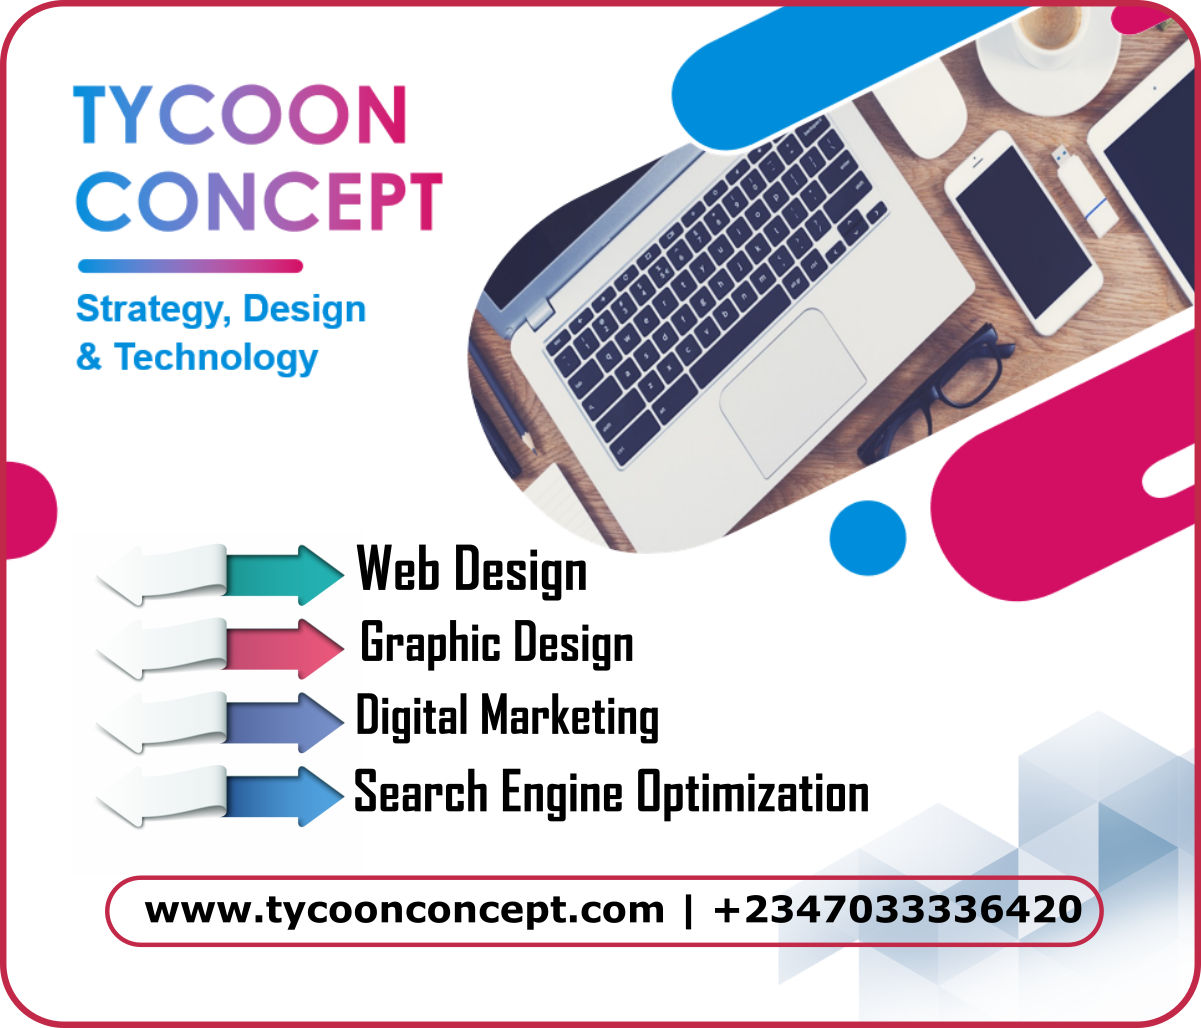 Reliable Web Design in Nigeria by TycoonConcept.com